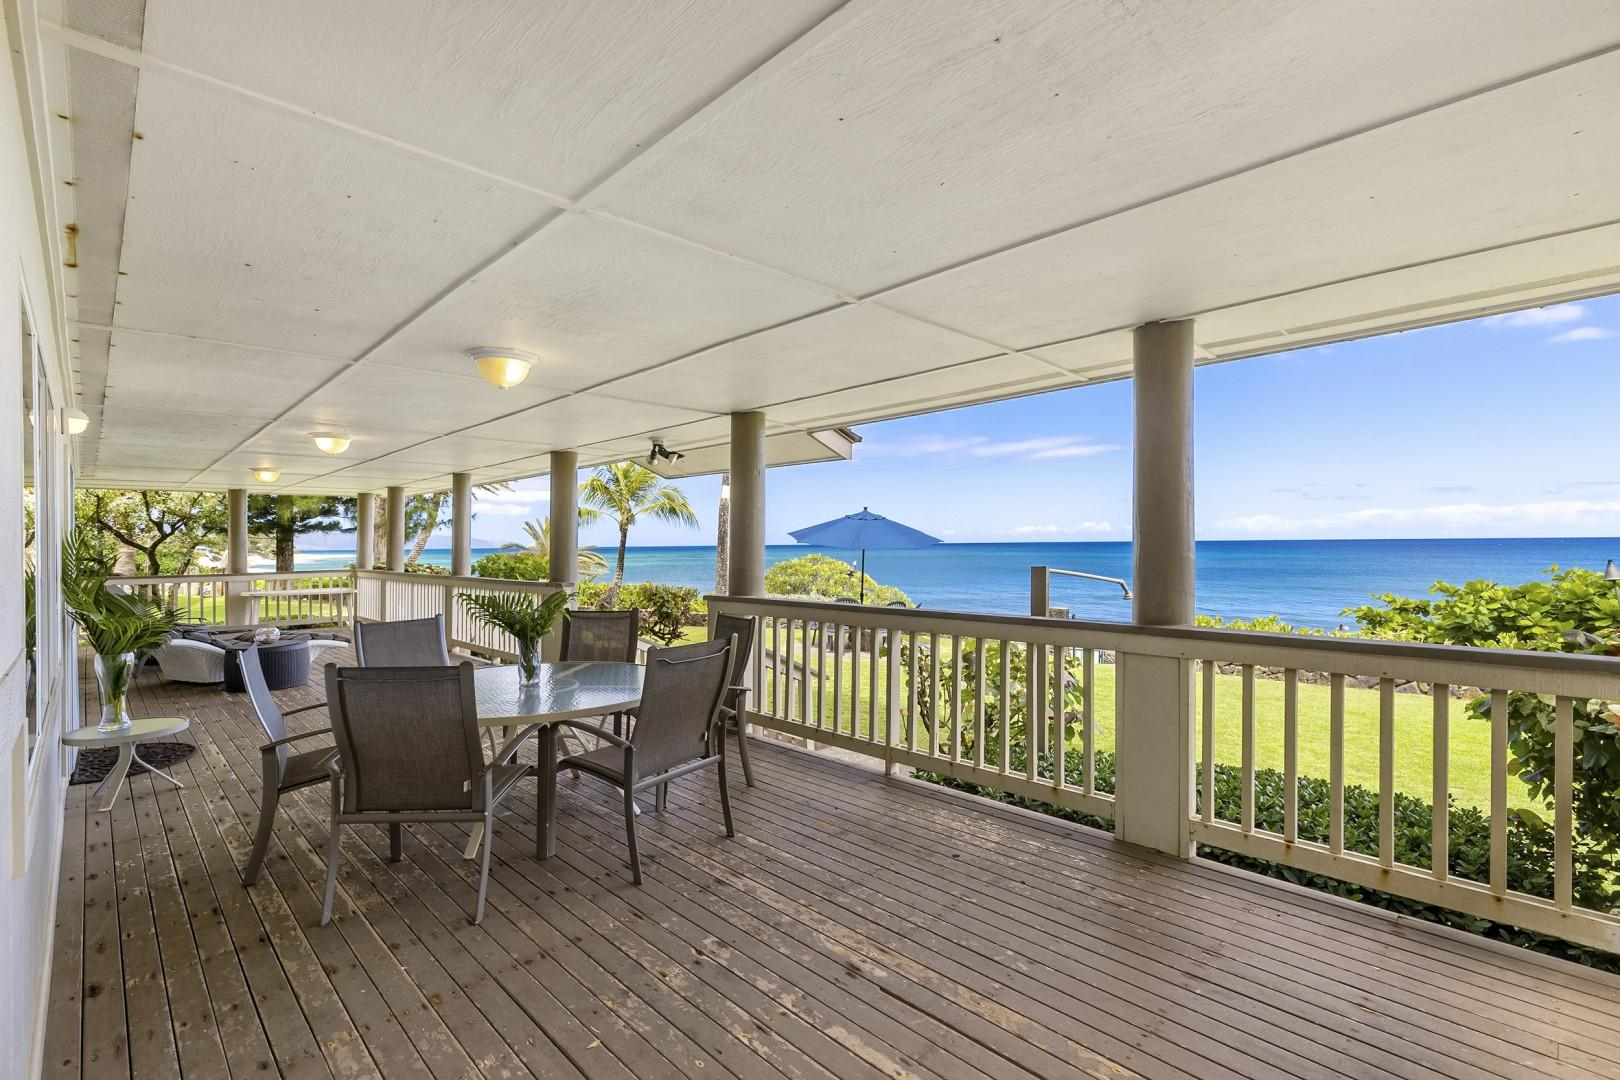 Downstairs lanai with outdoor dining area.